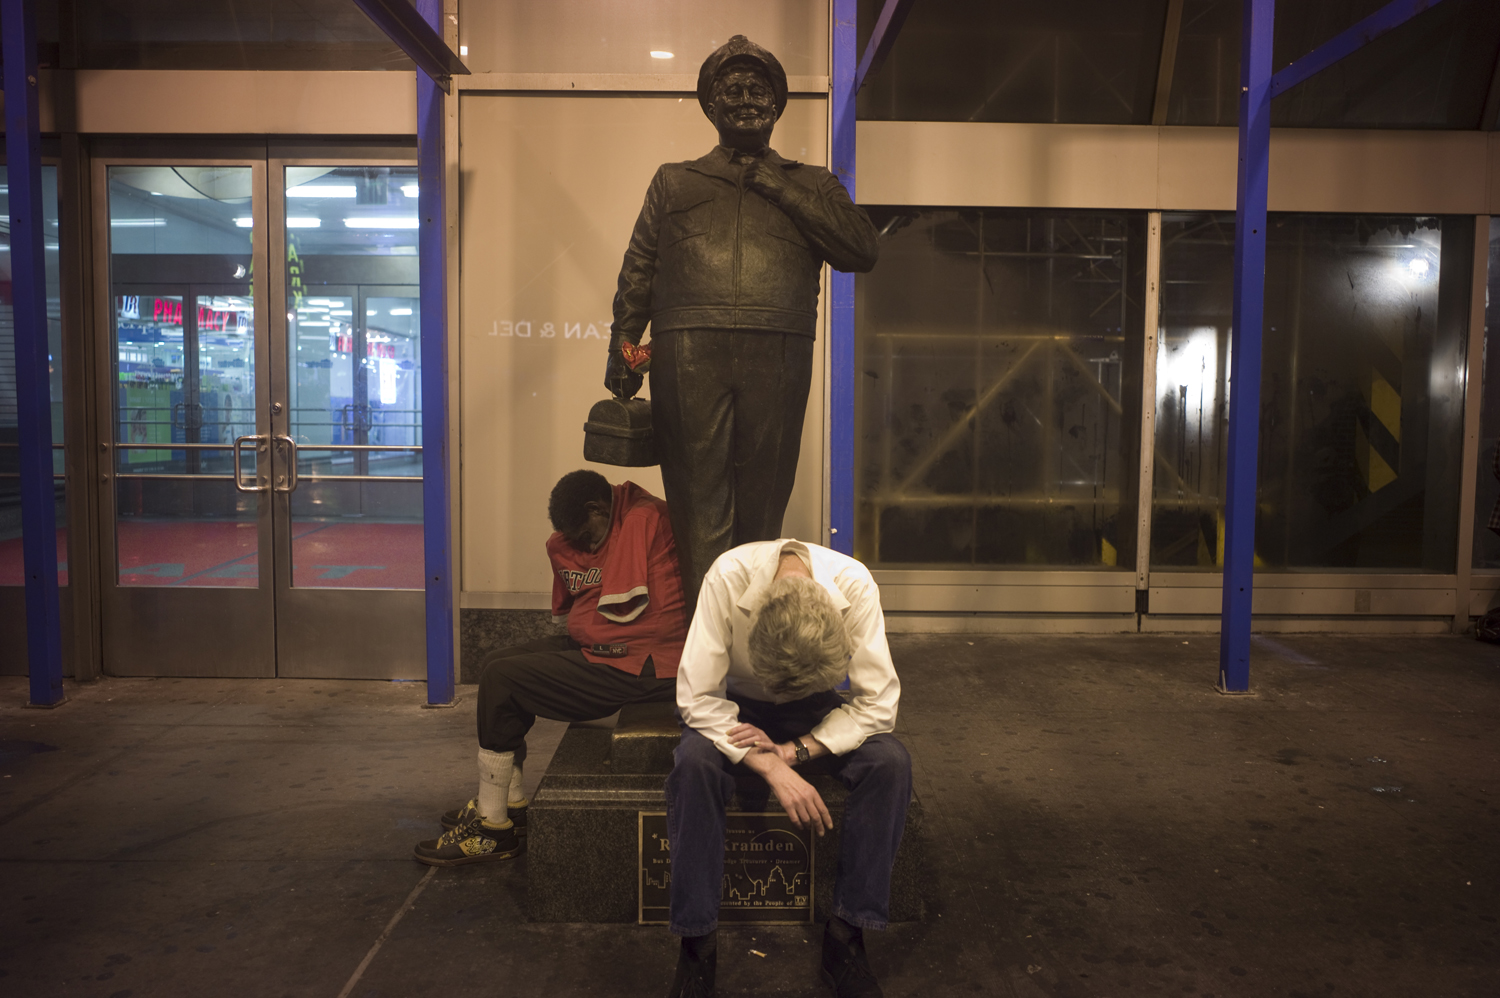 August 27, 2011, New York, NY. A late night scene outside the empty Port Authority Bus Terminal.